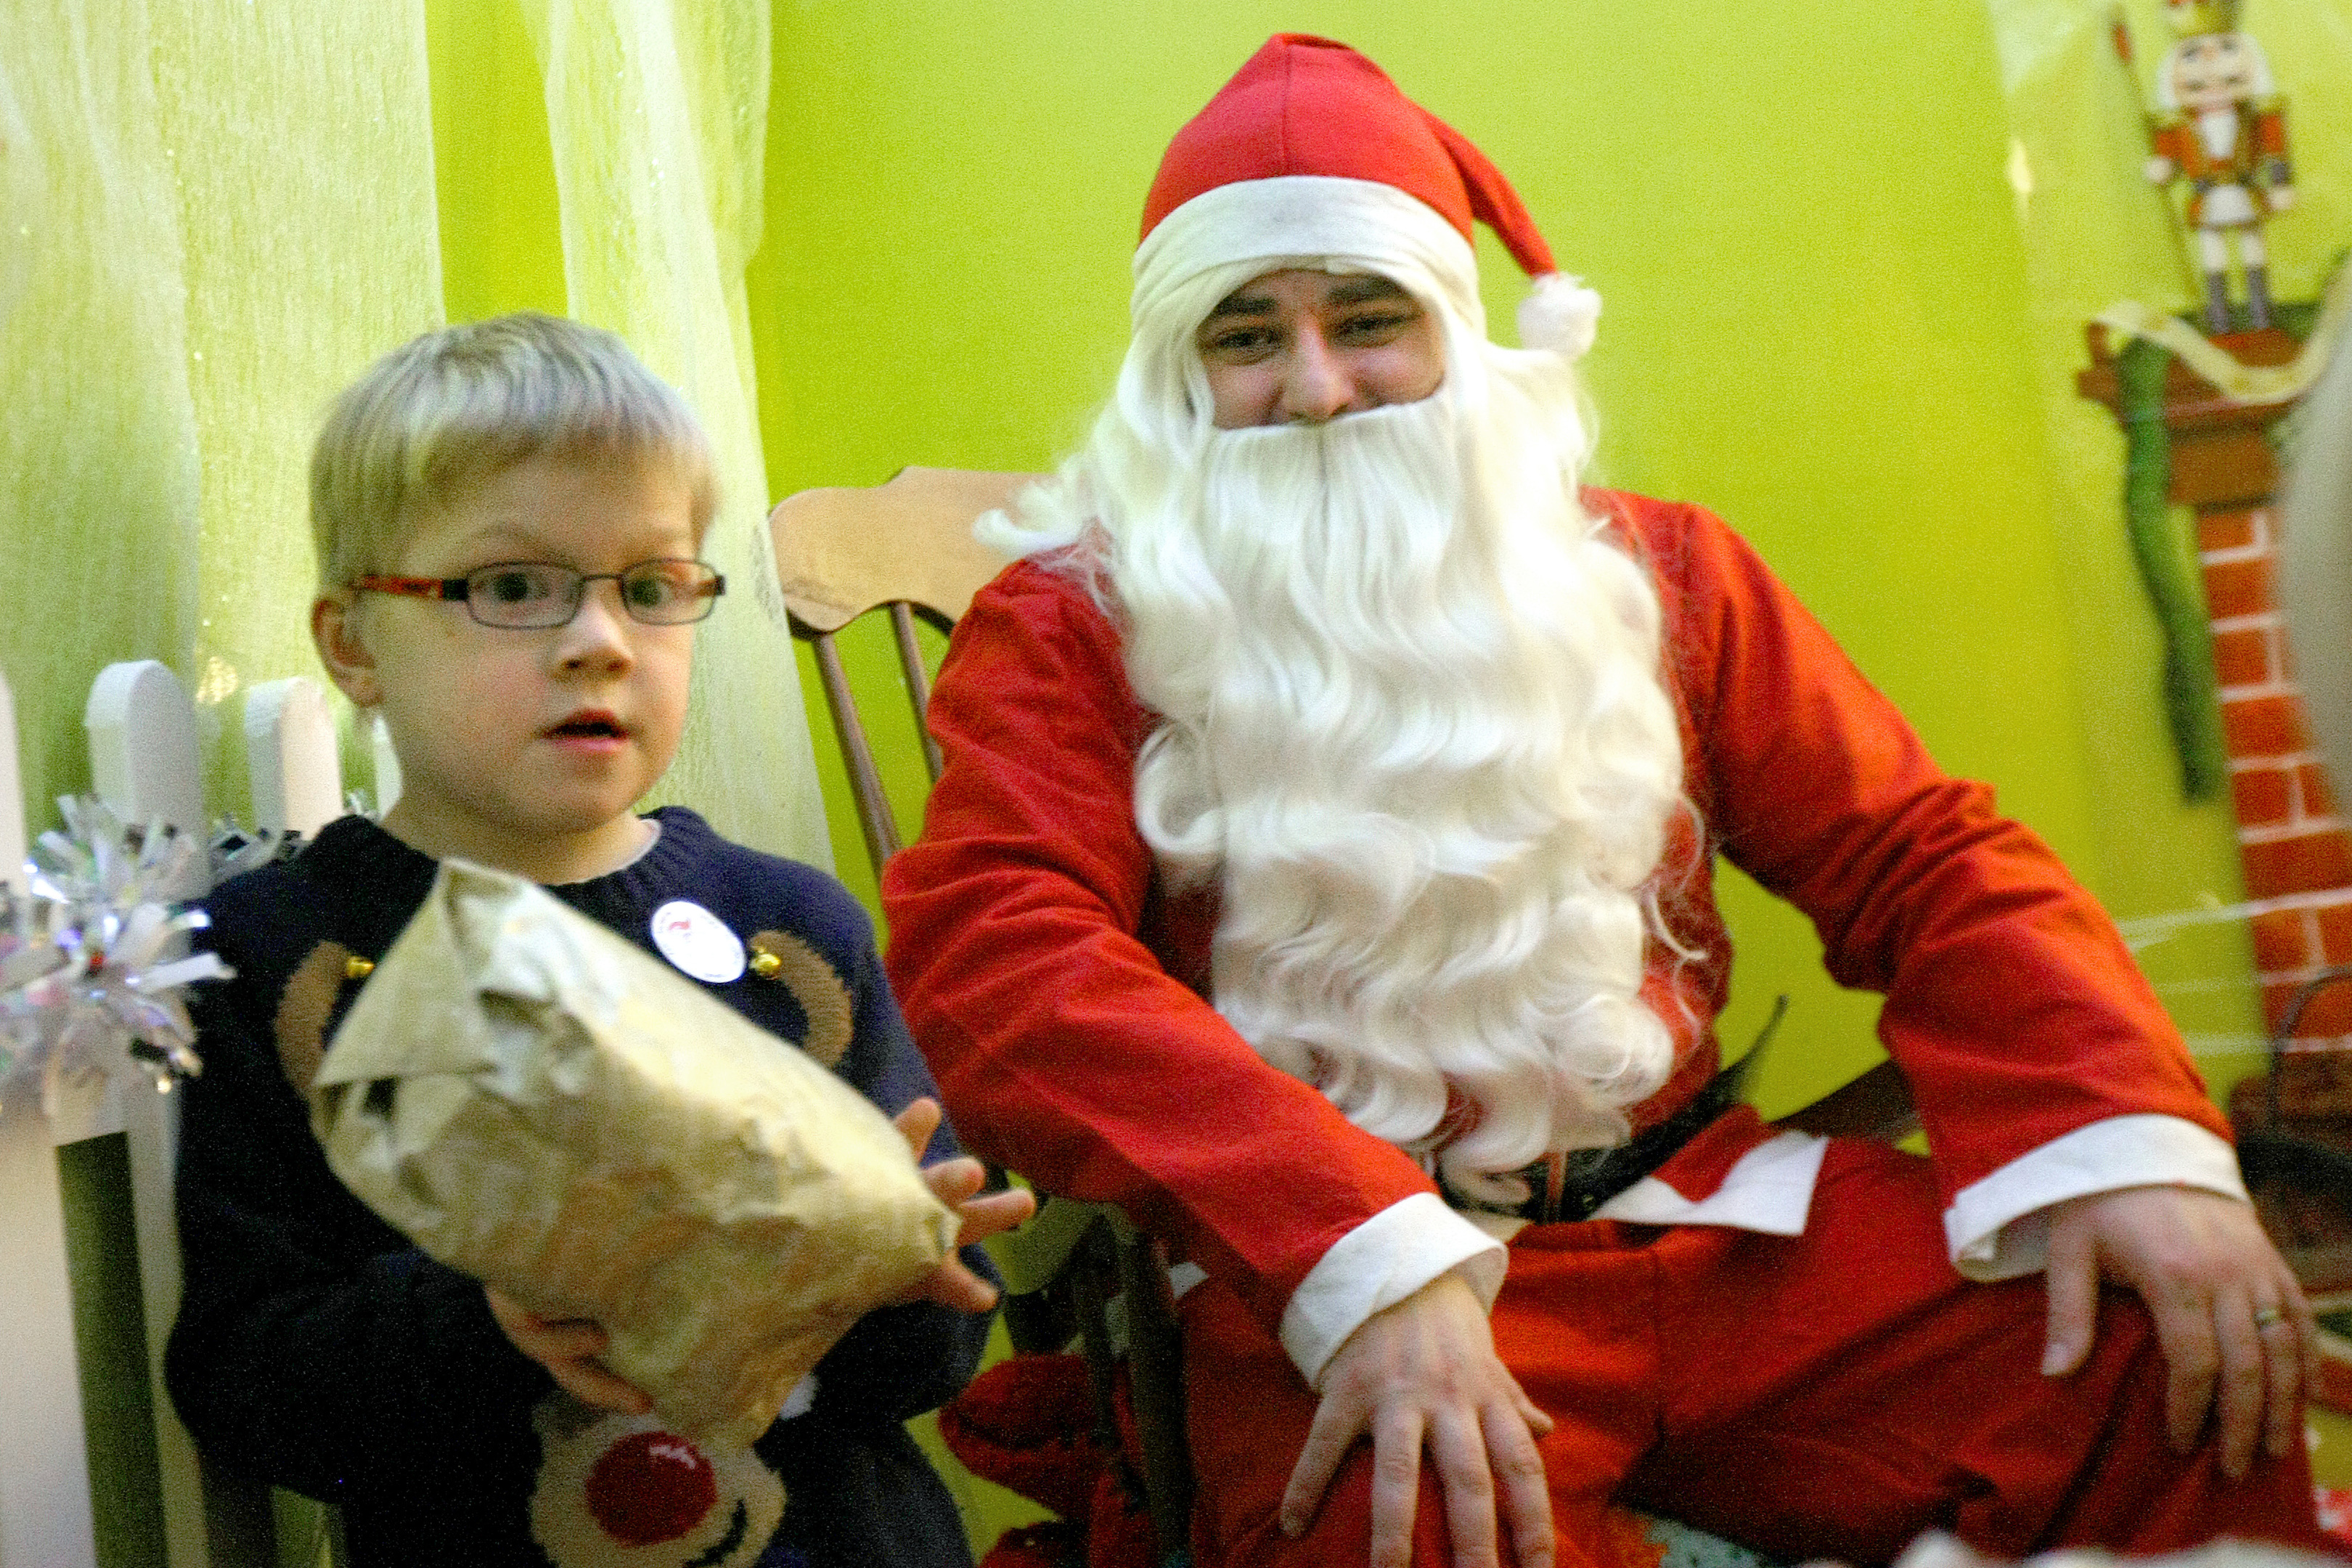 The grotto aims to bring Christmas closer to children with communication difficulties